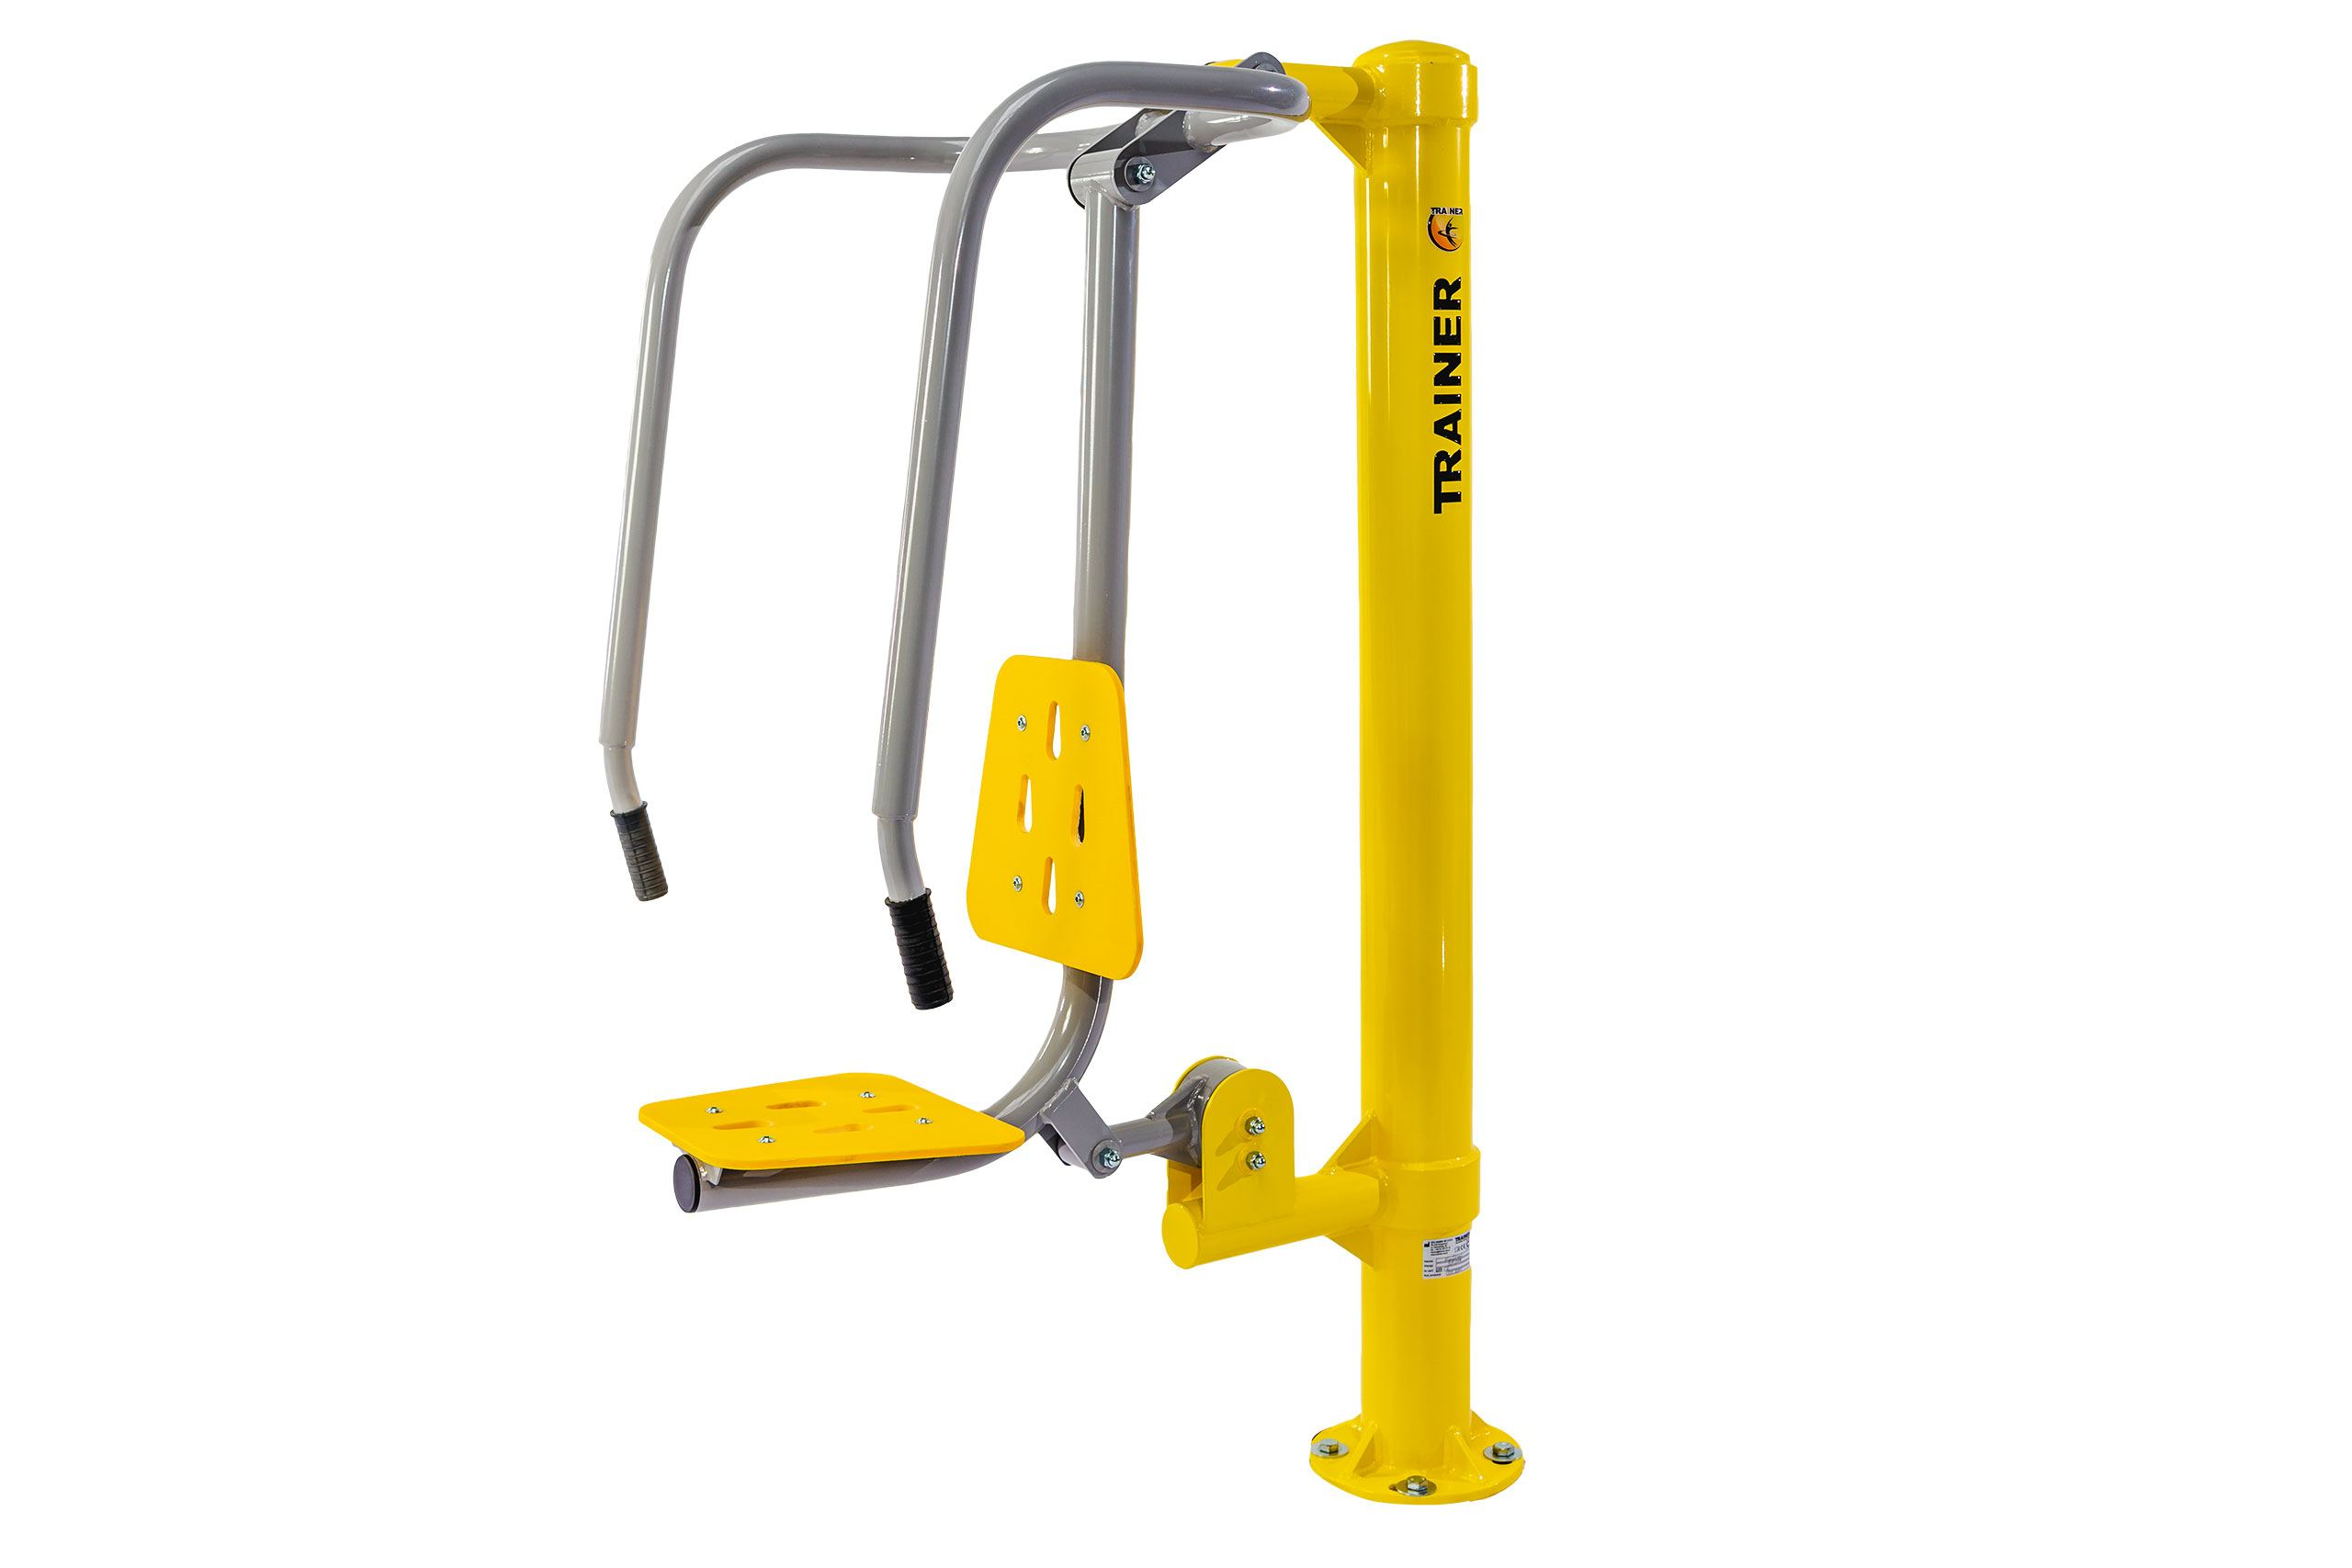 Push Chair - Outdoor Fitness Equipment